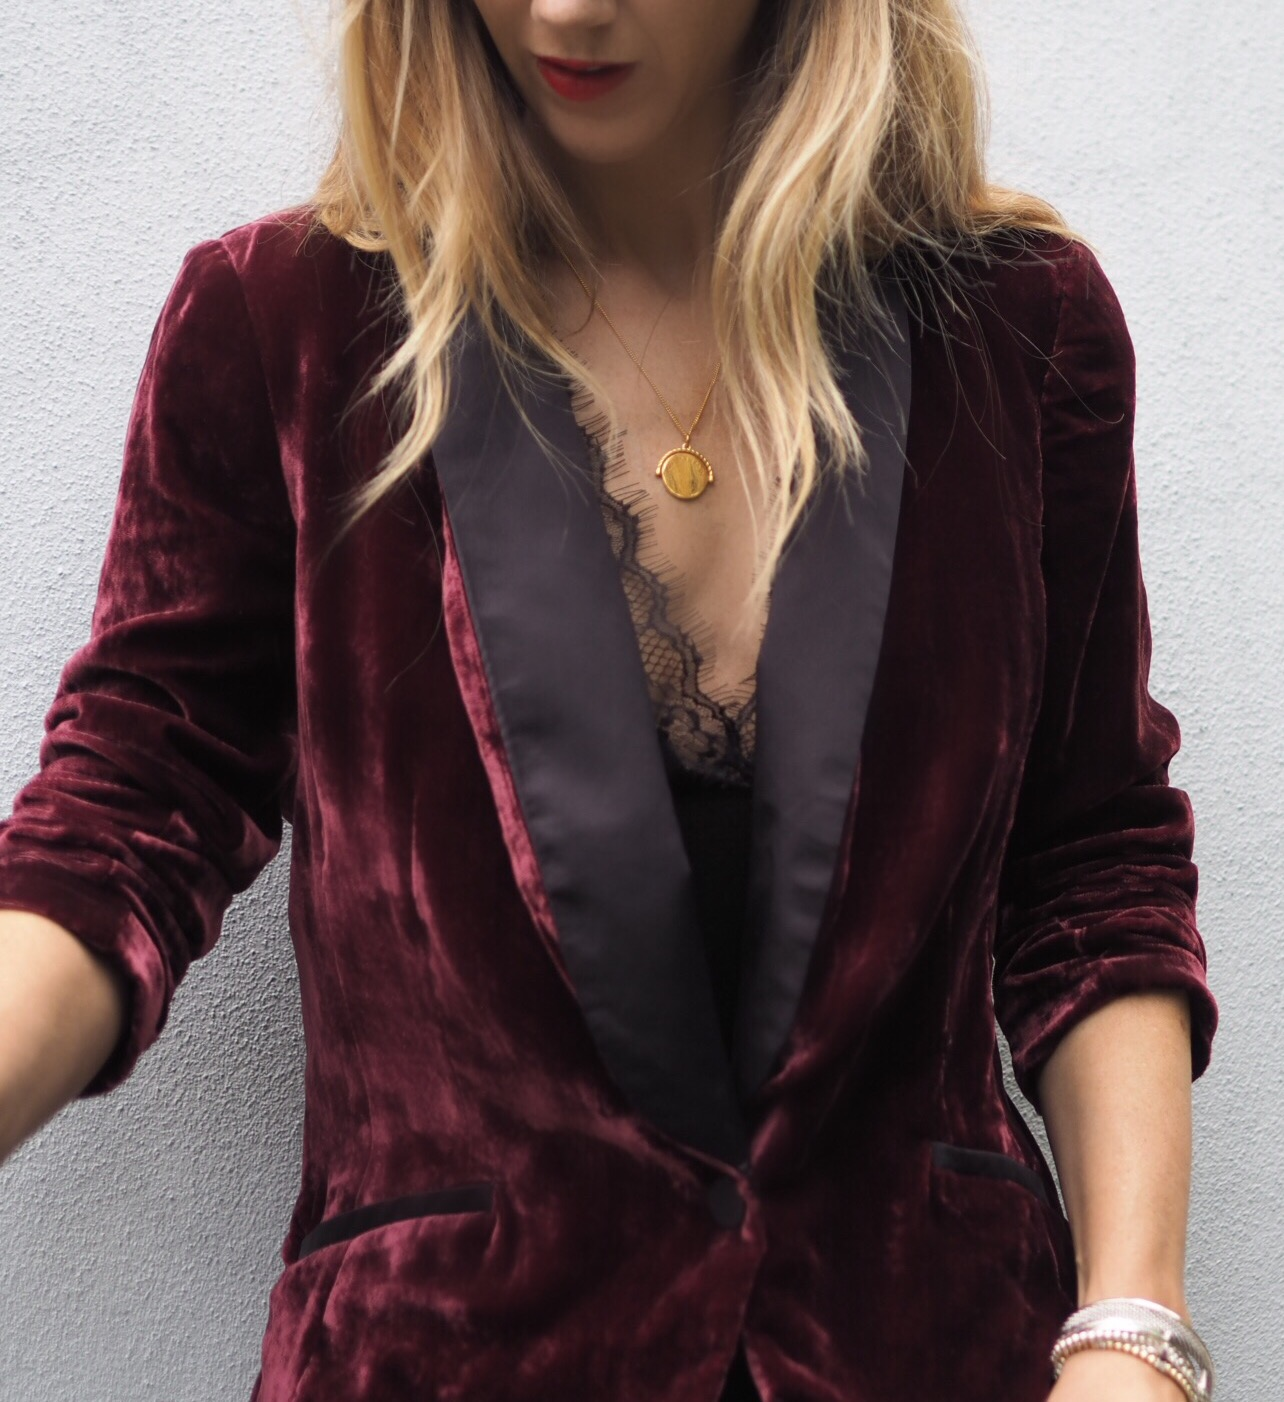 My velvet jacket from Beacons Closet